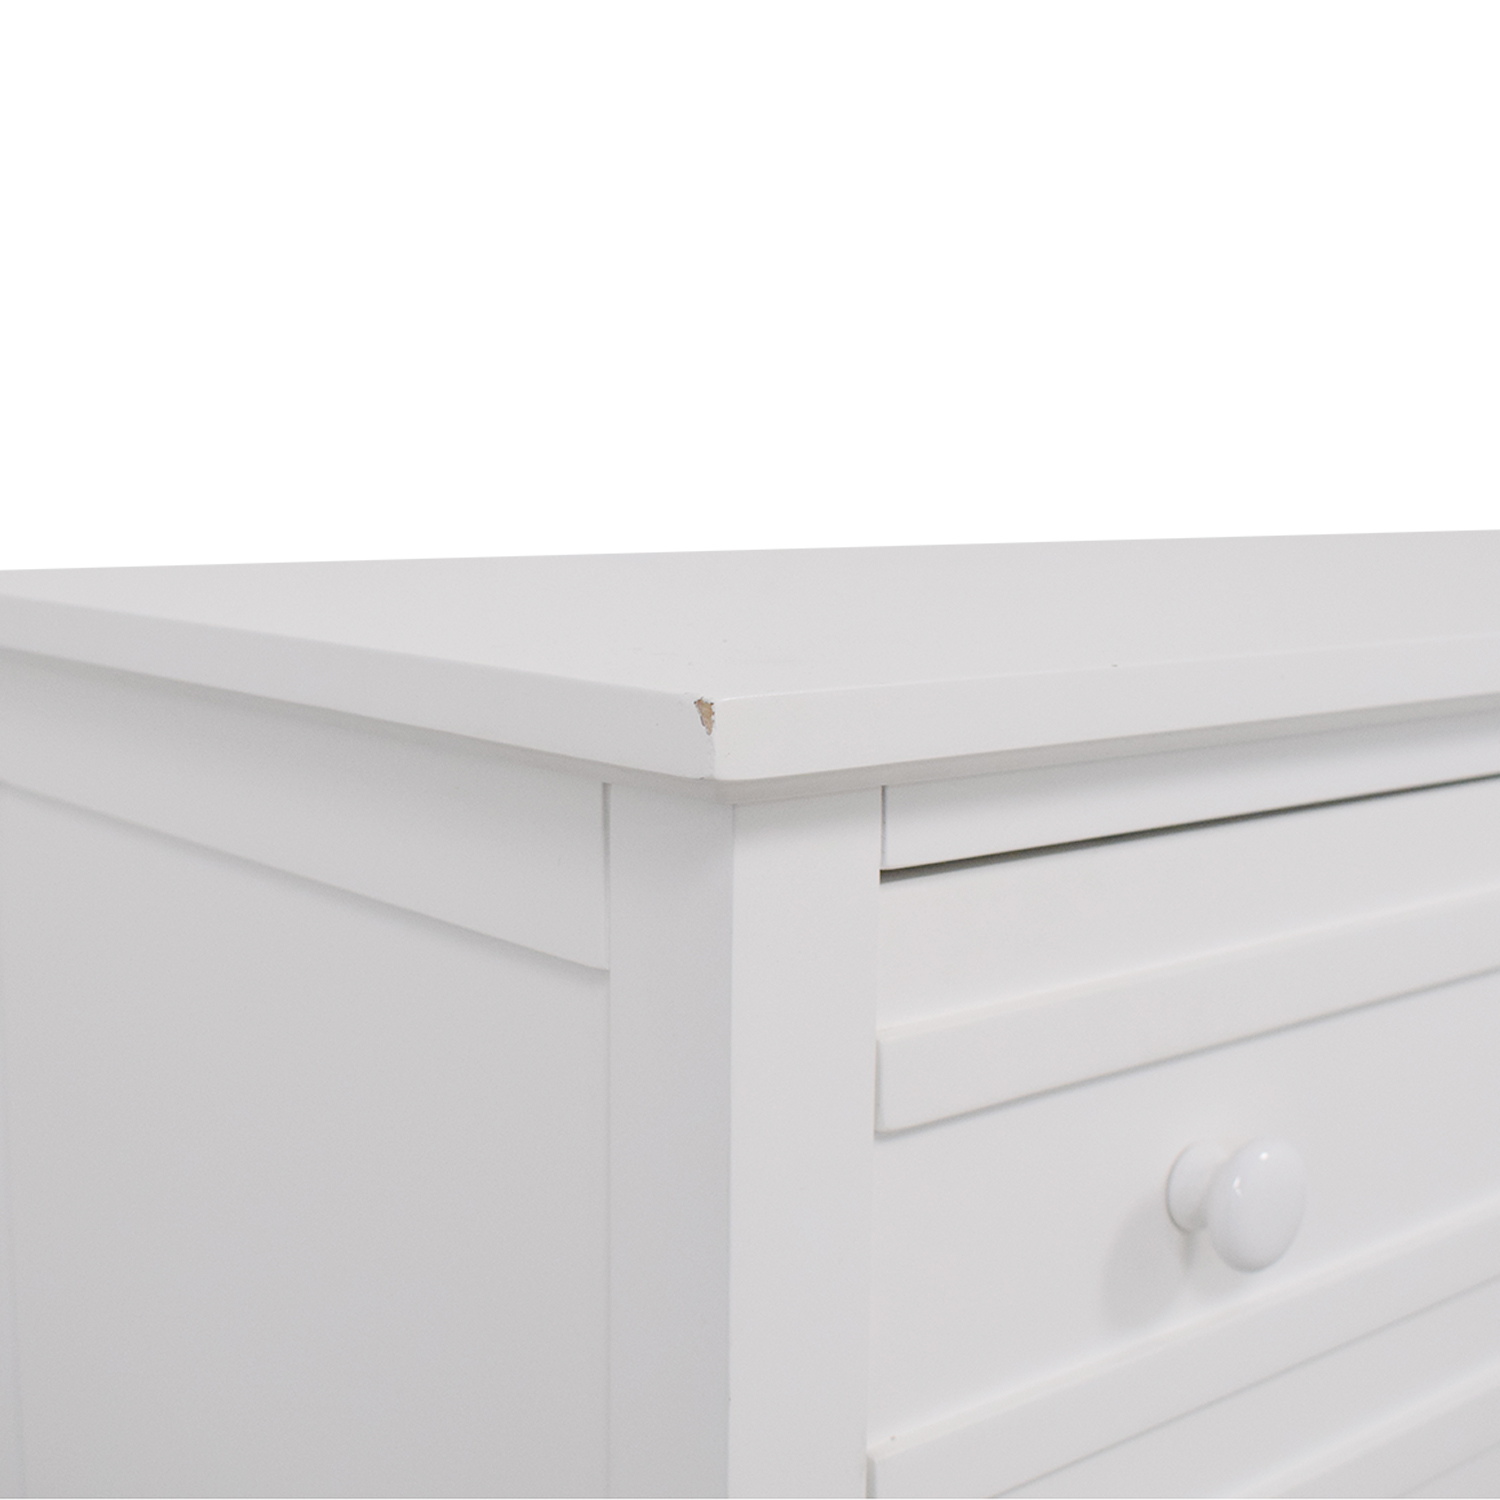 Crate & Barrel Crate & Barrel Brighton Six Drawer Dresser coupon